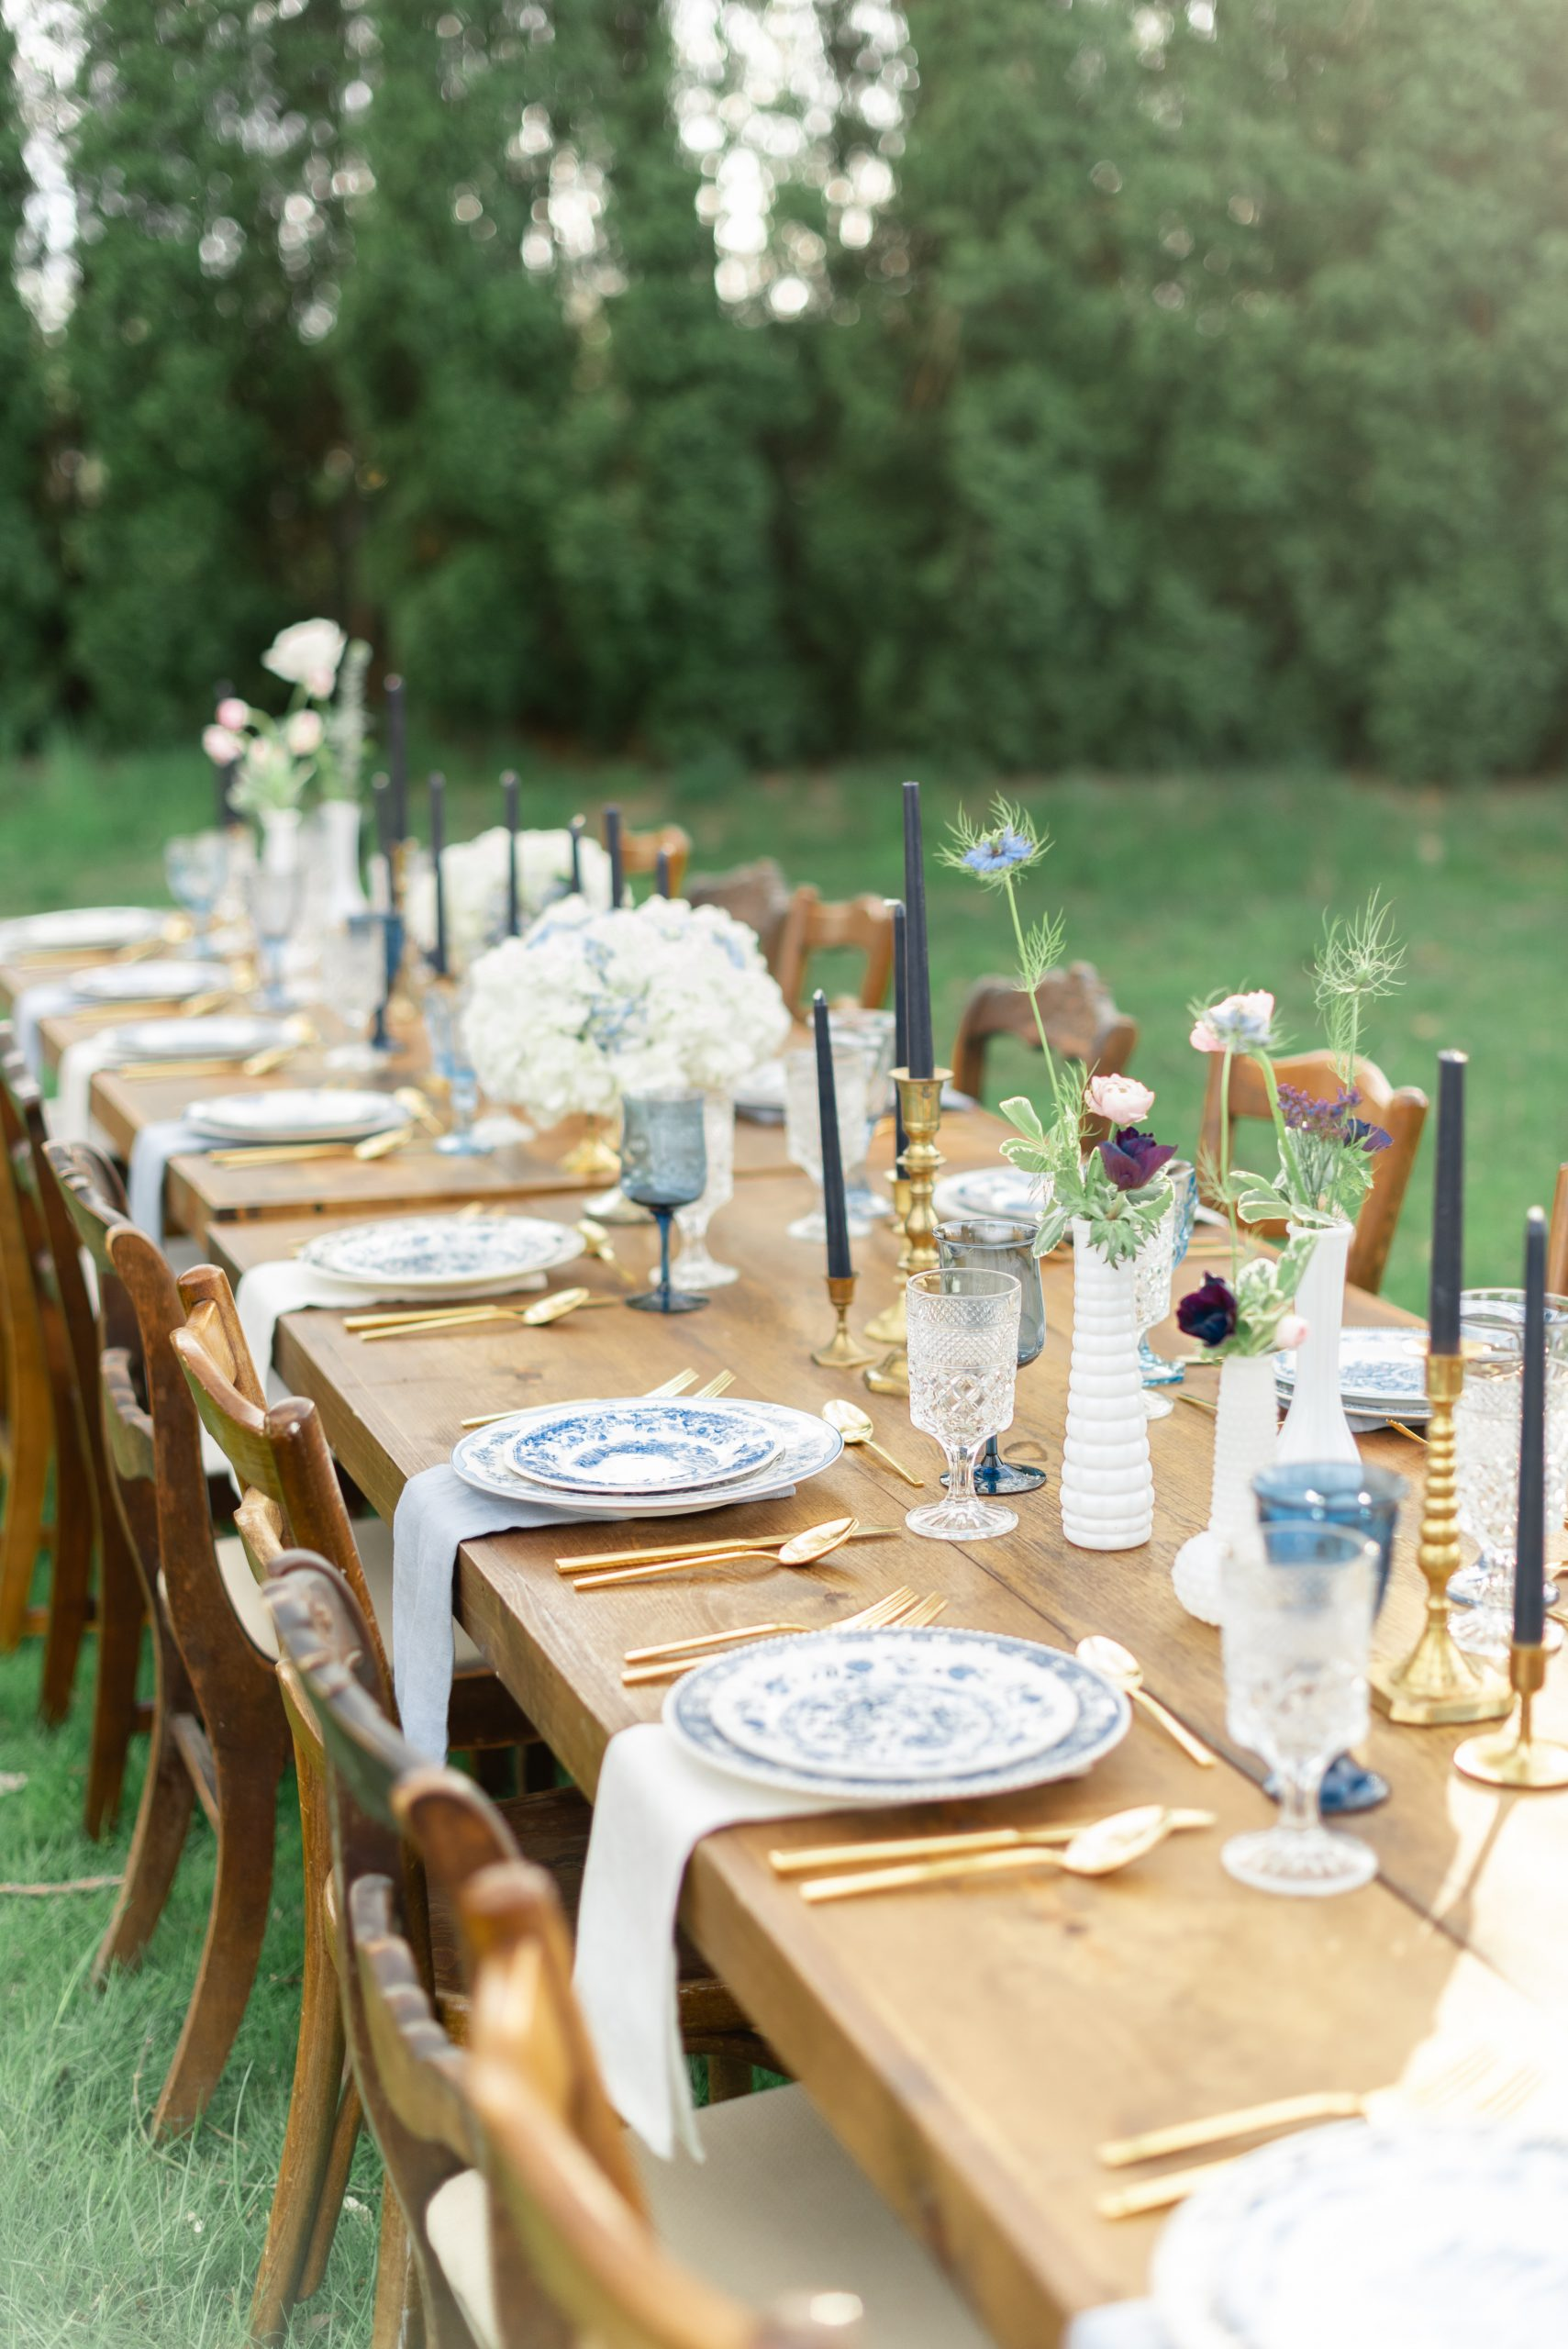 Farm tables by Rustique Rentals and dinnerware rentals by Flying China of Boise, Idaho.